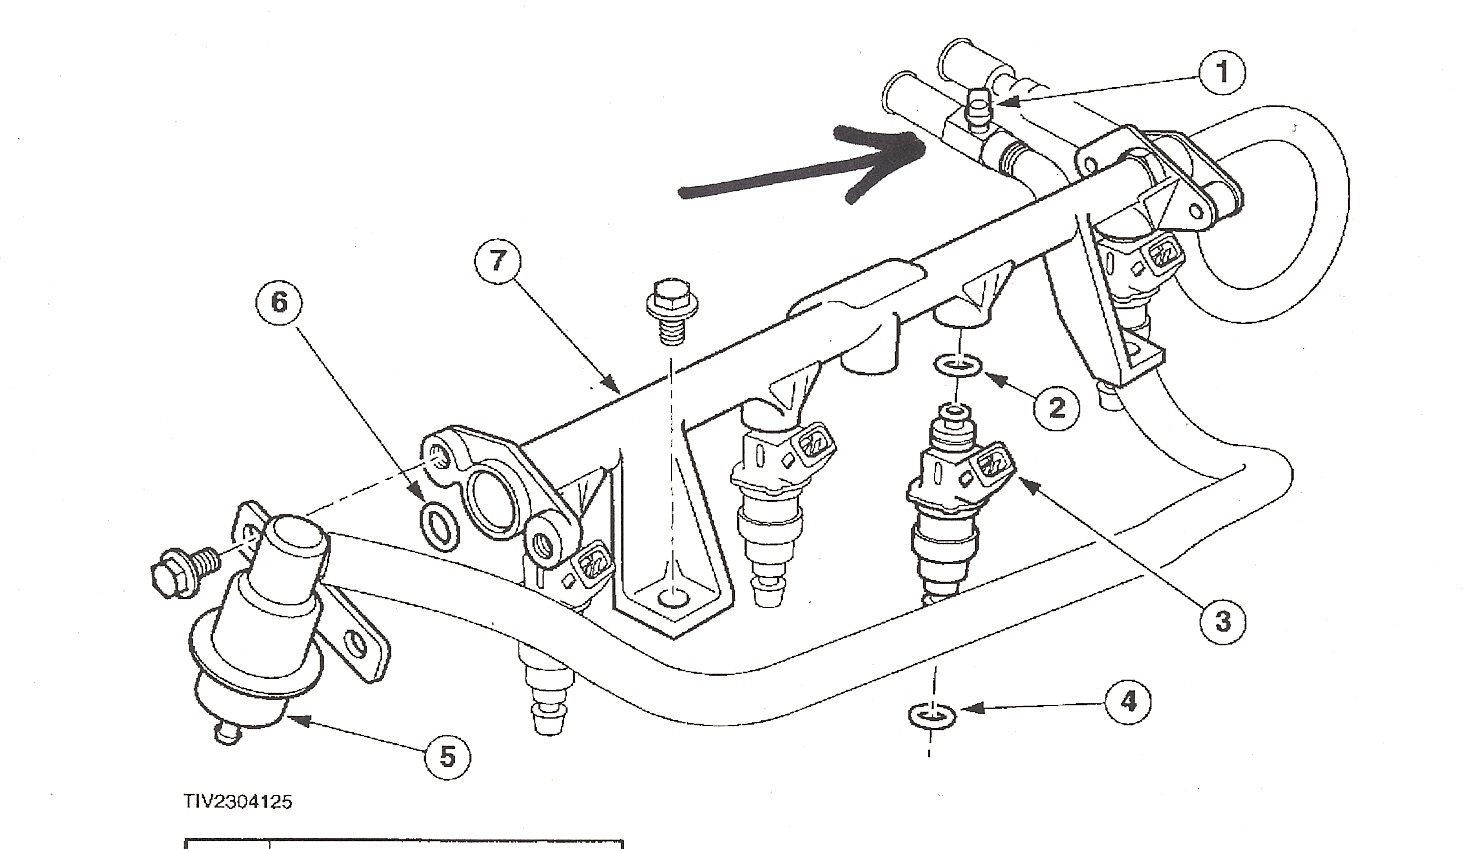 Where Is The Starter Located On A Ford Contour